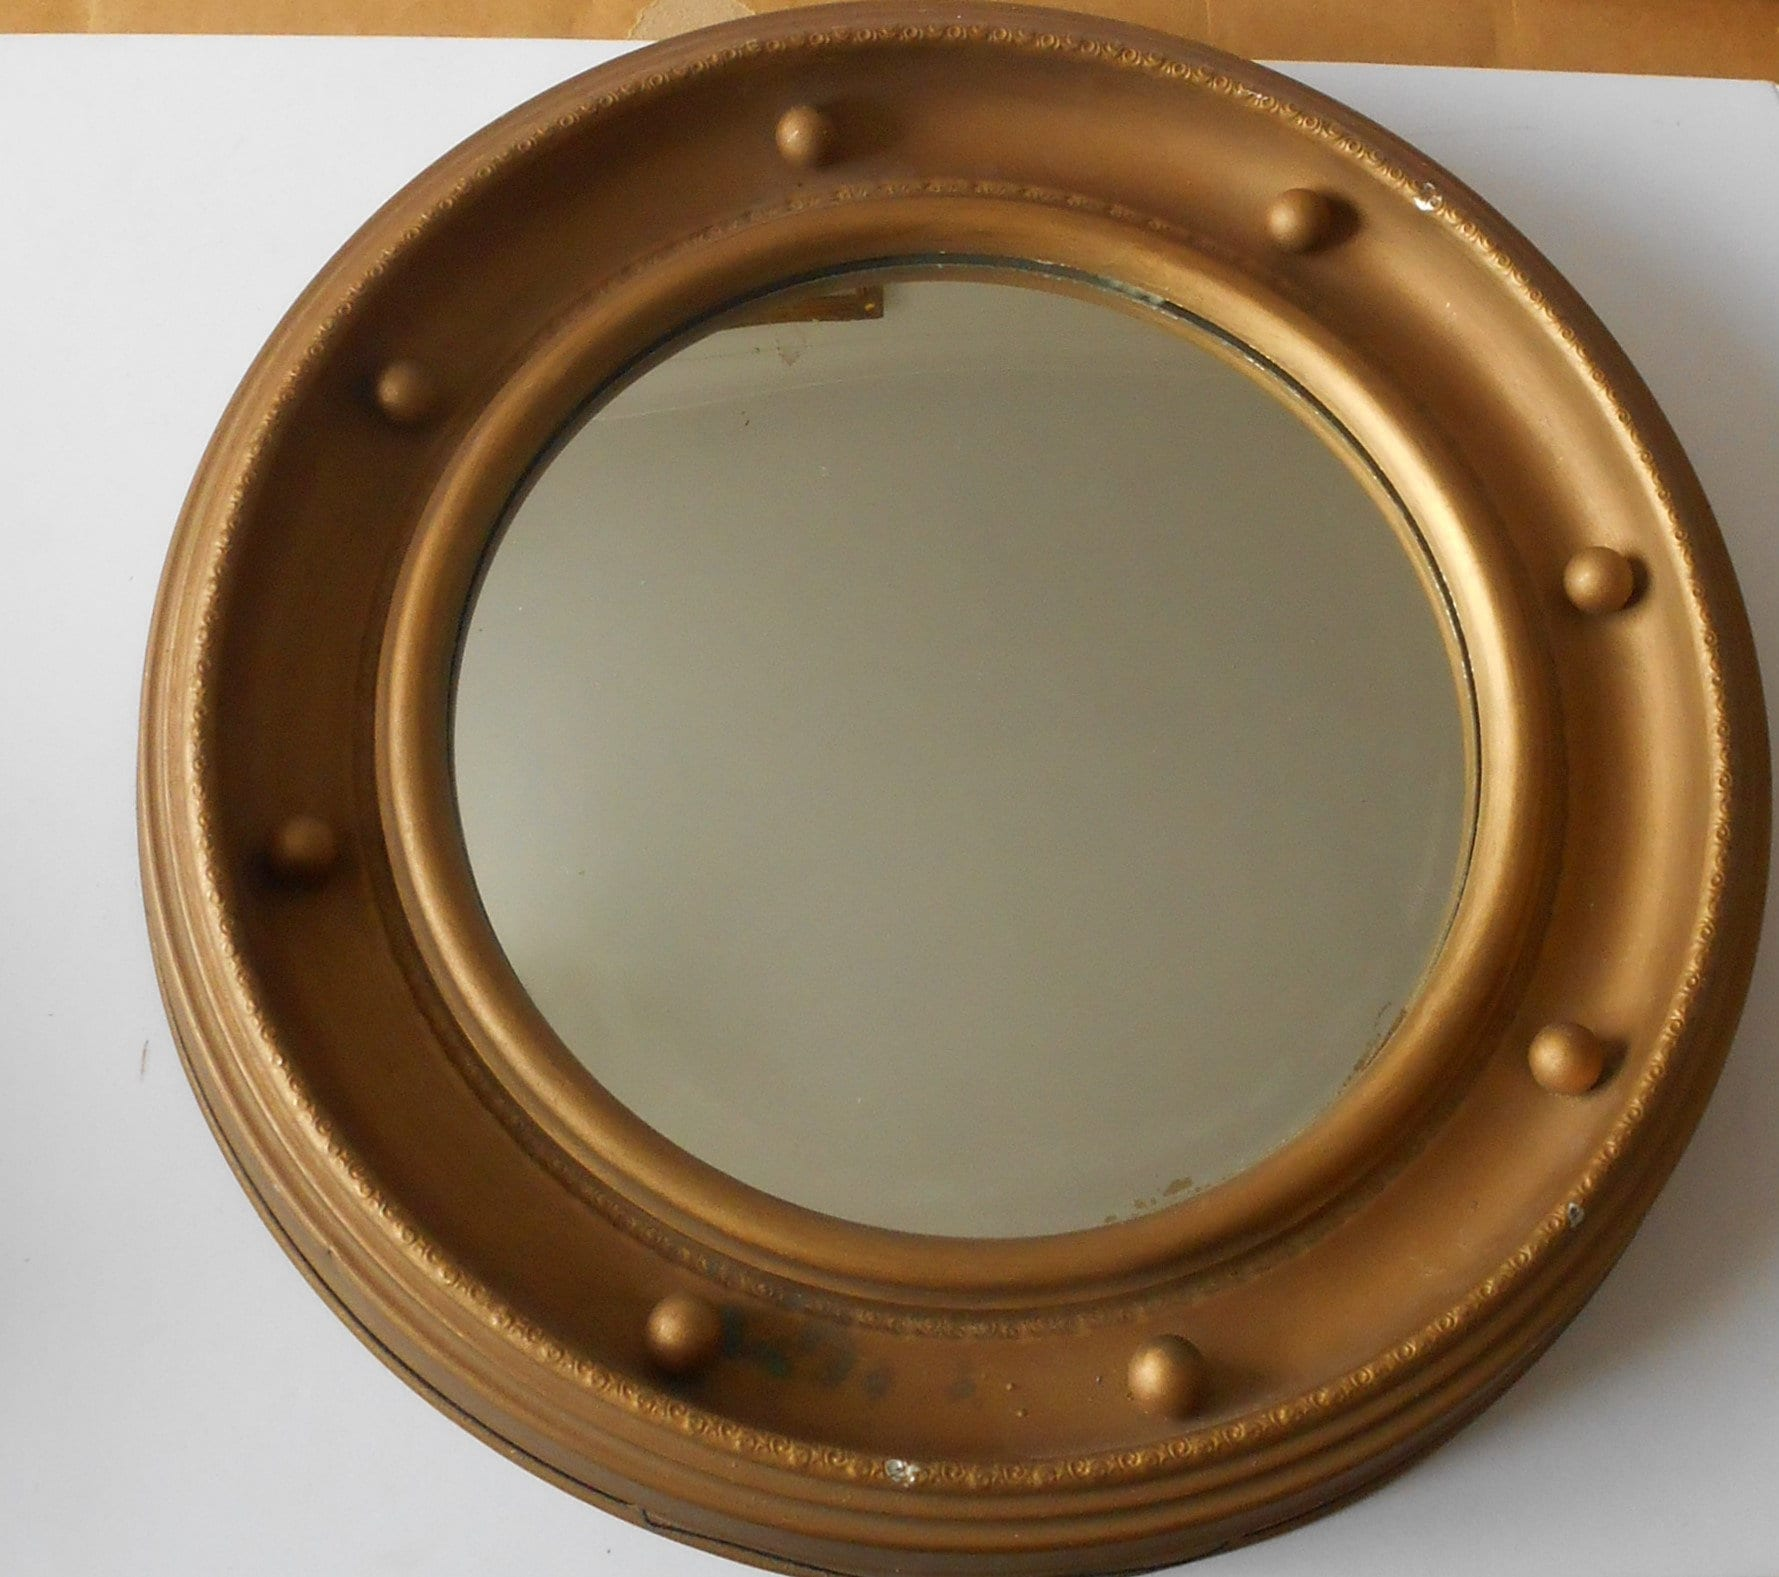 Large Porthole Mirror Concave Brass Gold Color Porthole Mirror Etsy